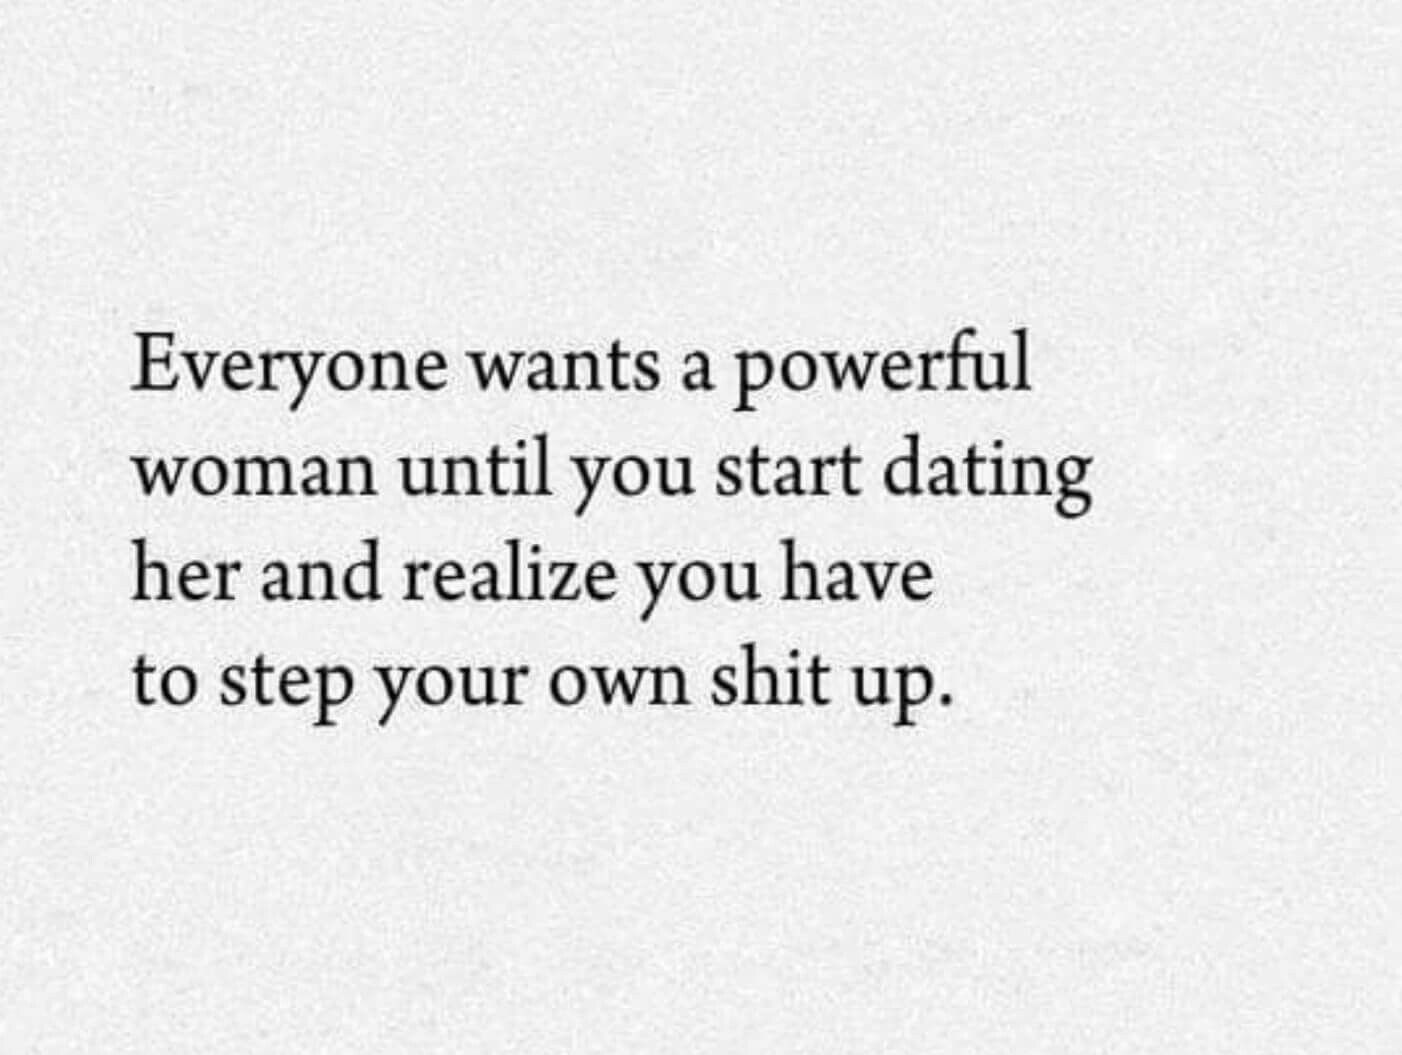 Dating a strong woman quotes